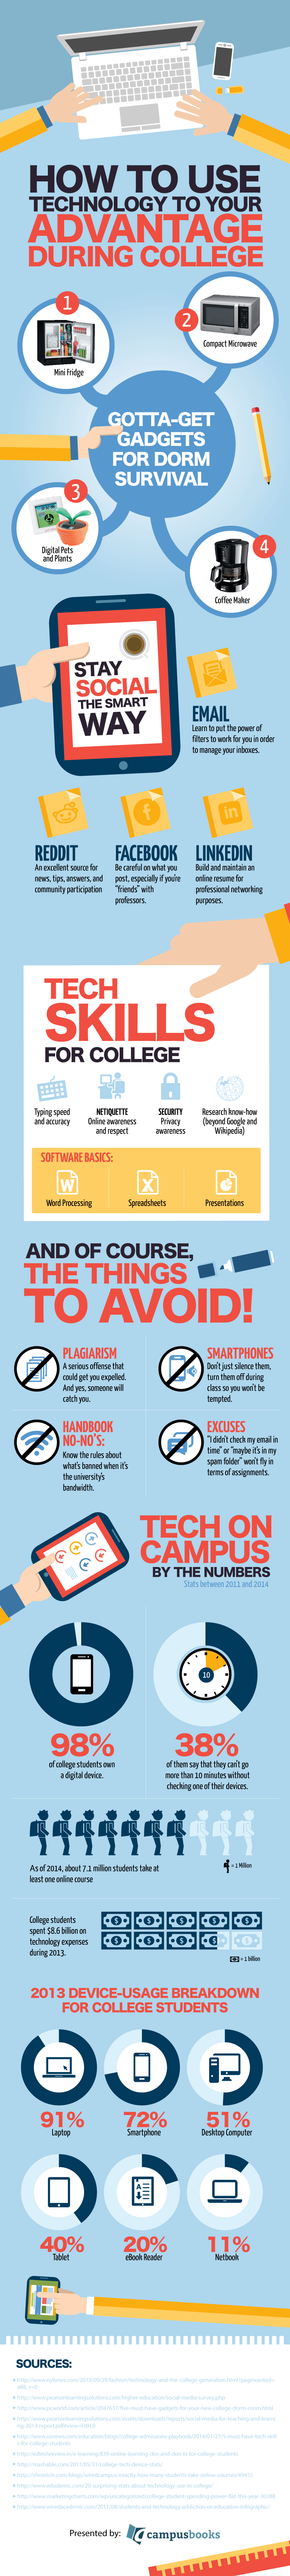 How to Use Technology to Your Advantage During College Infographic